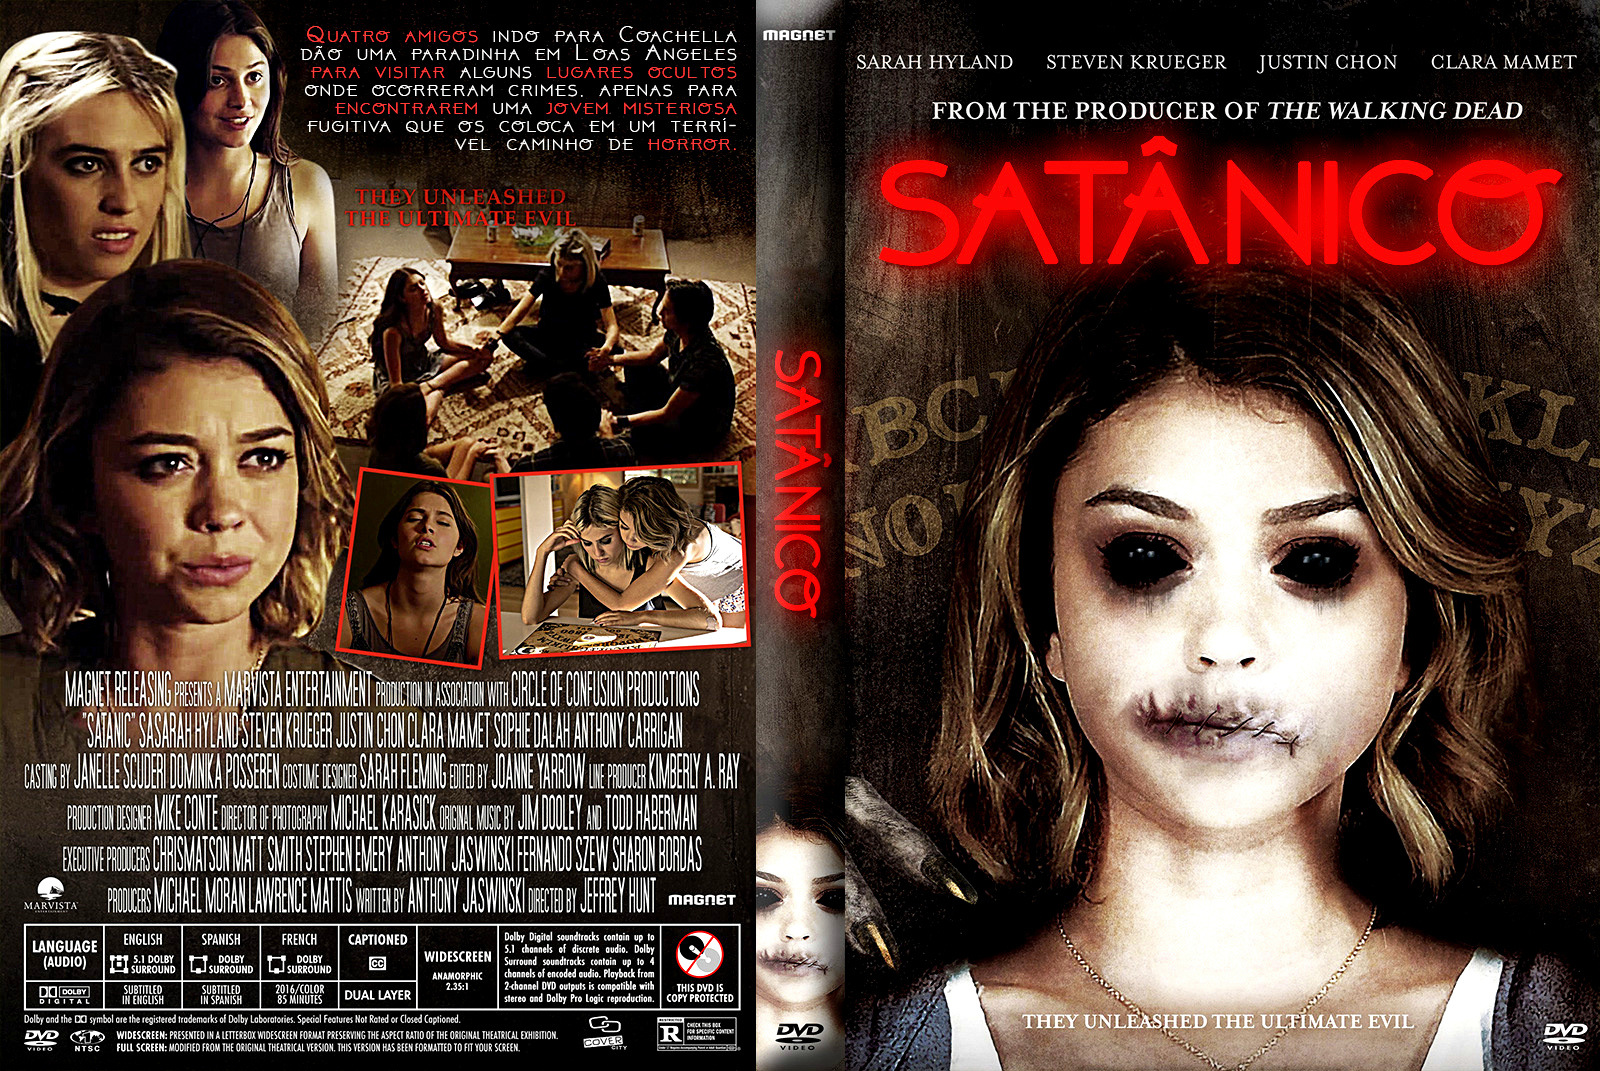 Download Satânico DVD-R Download Satânico DVD-R Sat 25C3 25A2nico 2B  2BXANDAODOWNLOAD